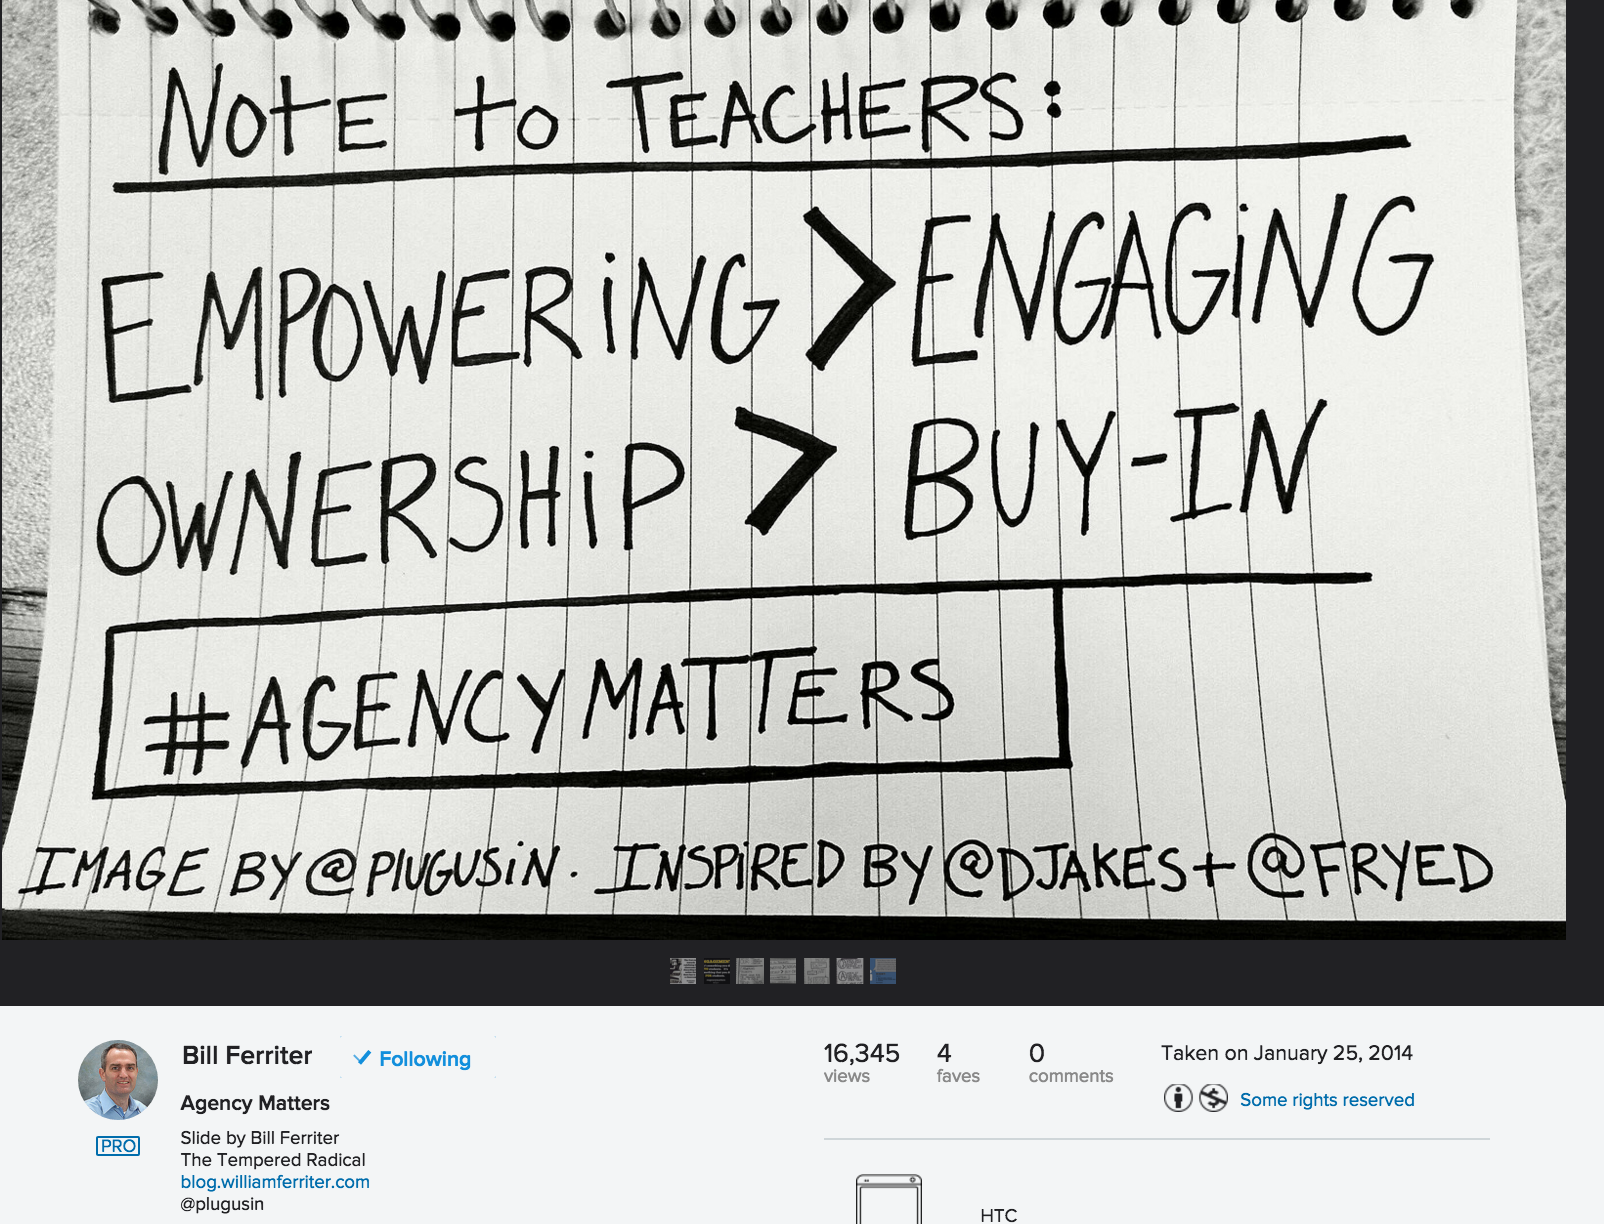 Shared by Bill Ferriter under a CC-BY-NC-2.0 license https://www.flickr.com/photos/plugusin/12188001525/